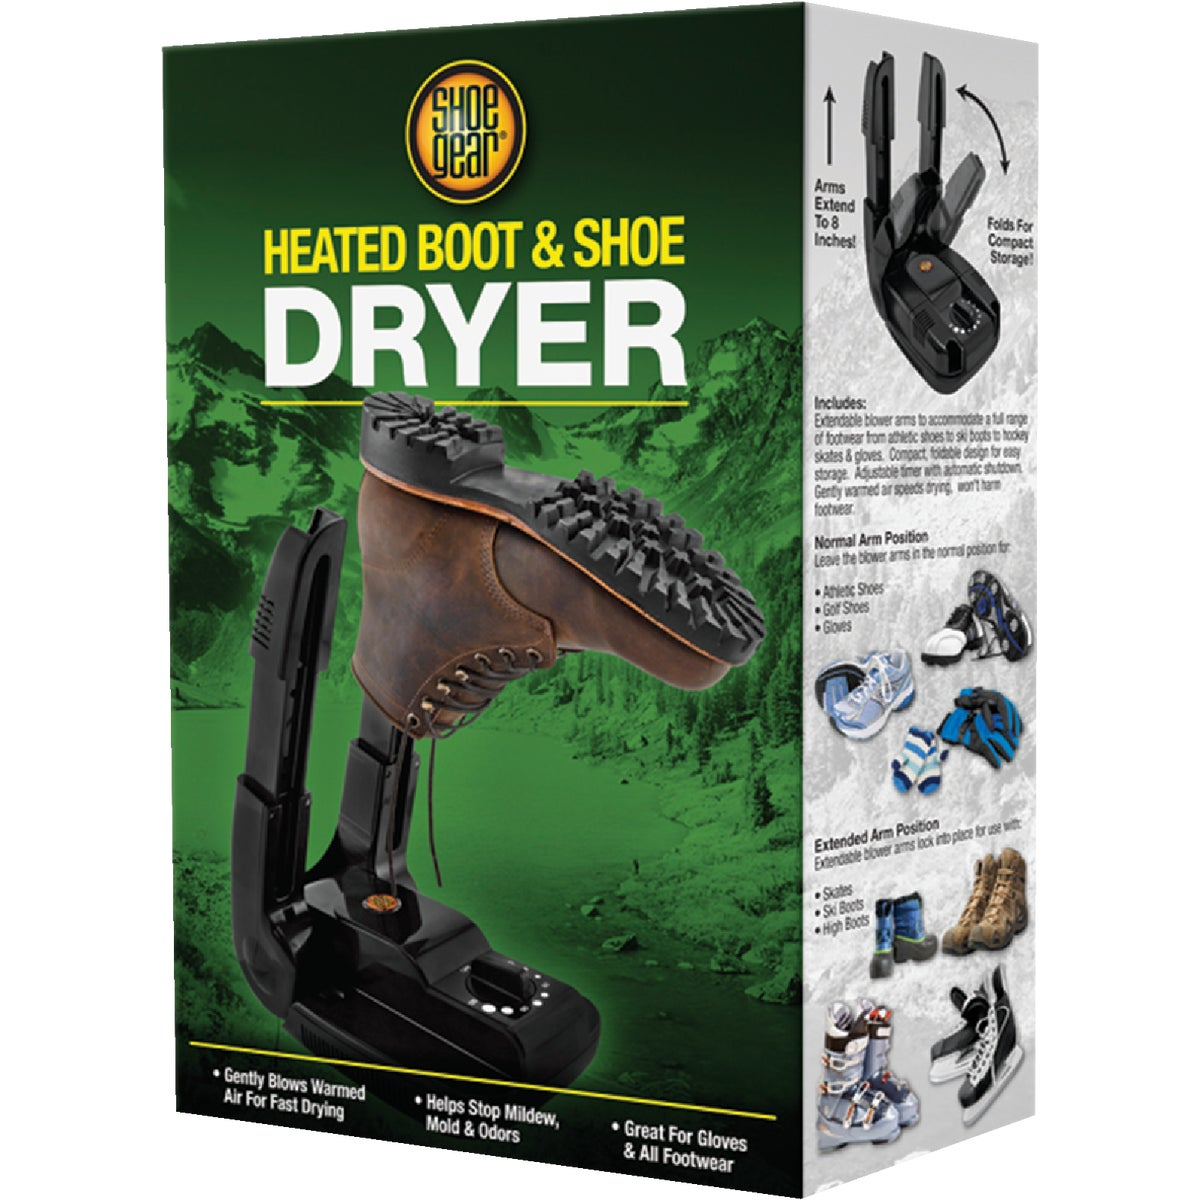 HEATED BOOT DRYER - 795-01 by Westminster Pet